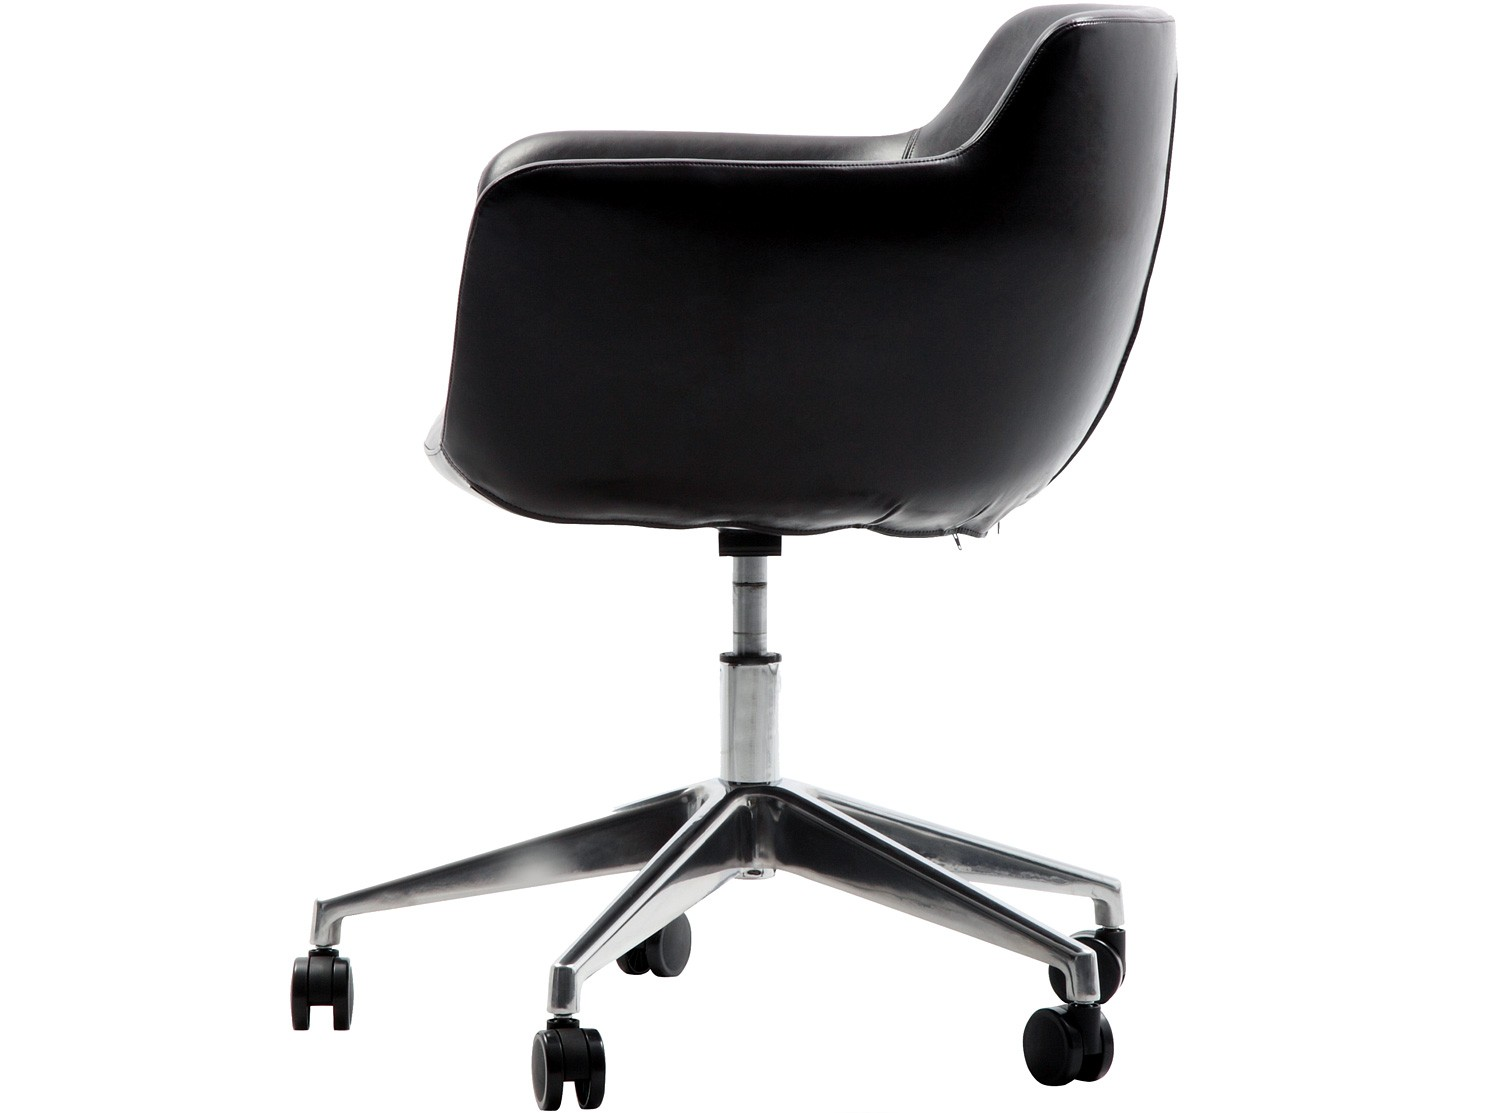 chair on wheels office that sits higher plaza desk chicicat